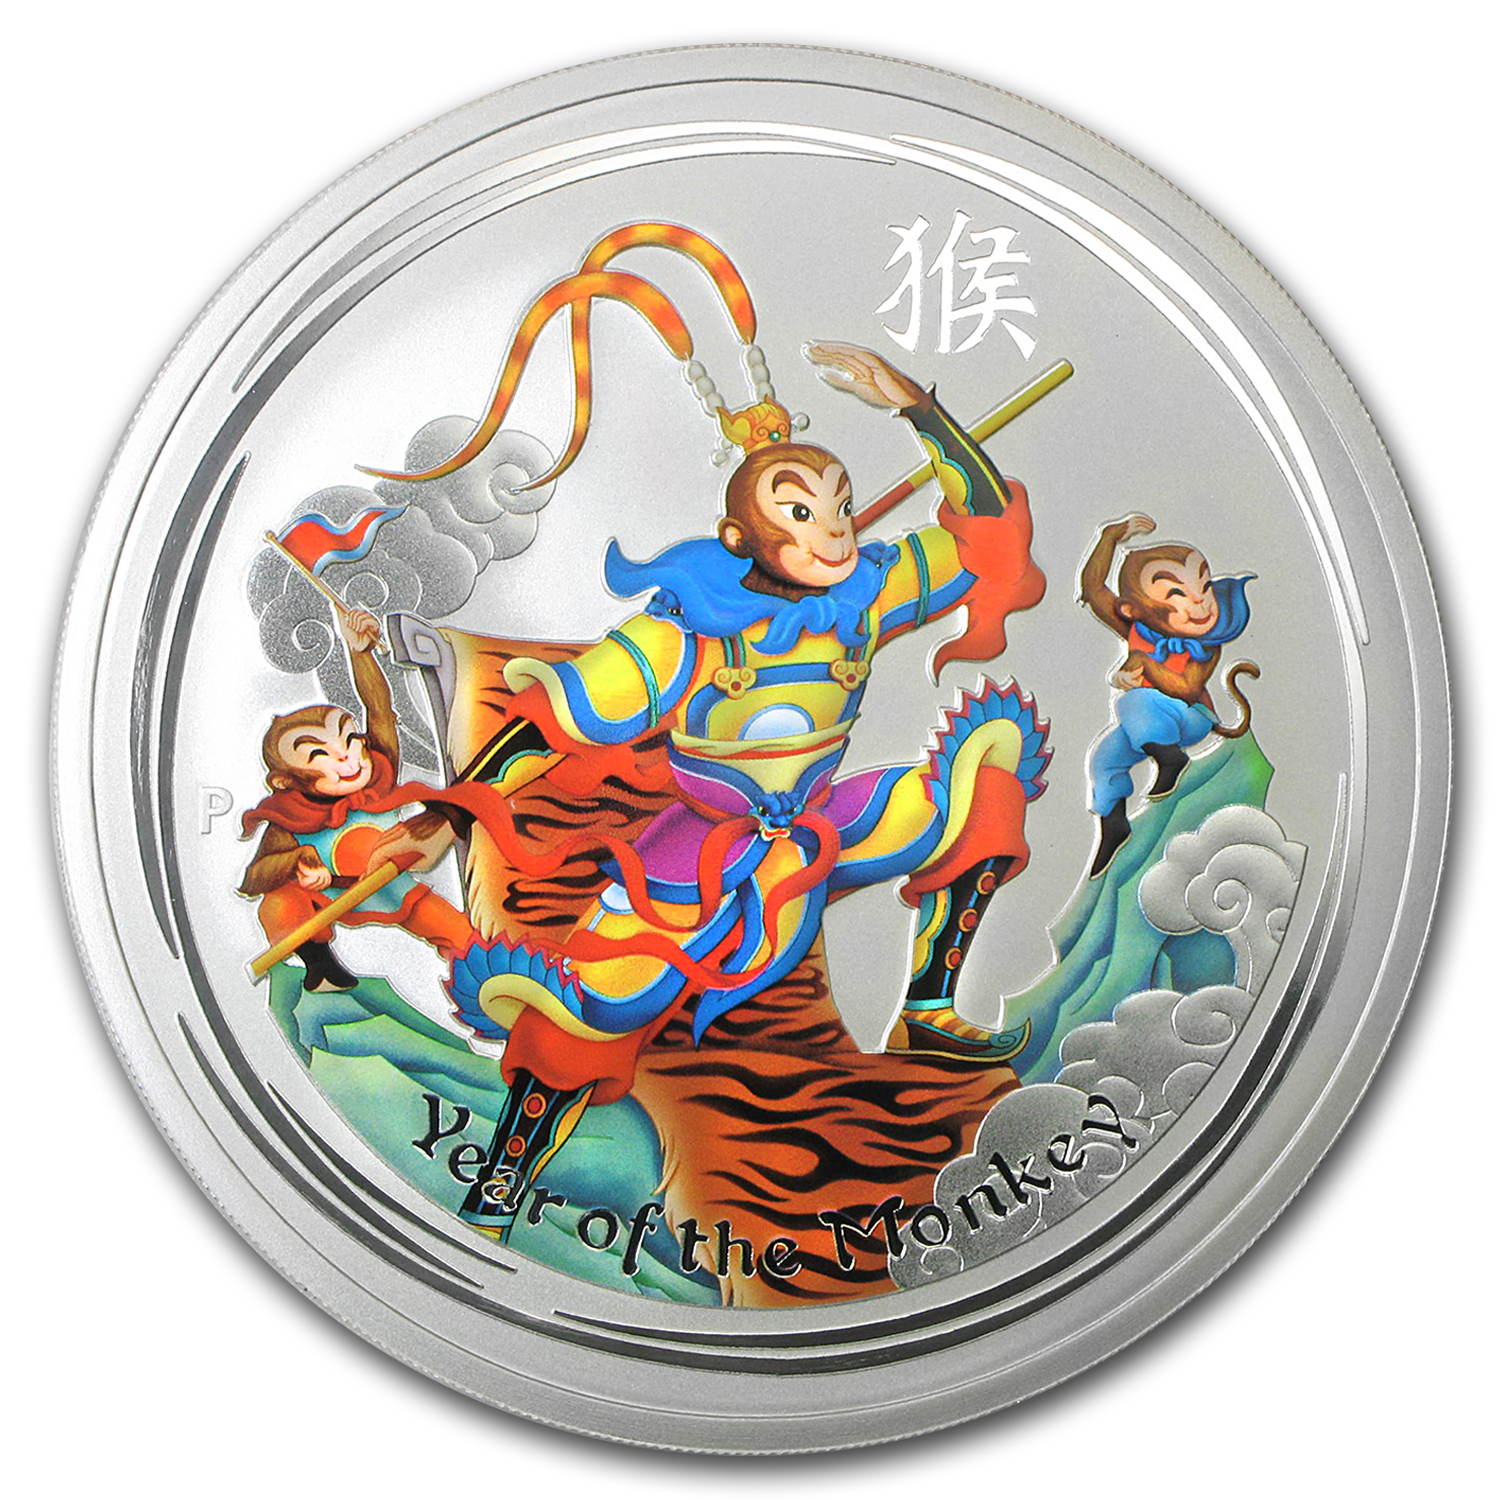 2016 Australia 1/2 oz Silver Lunar Monkey King Colorized BU